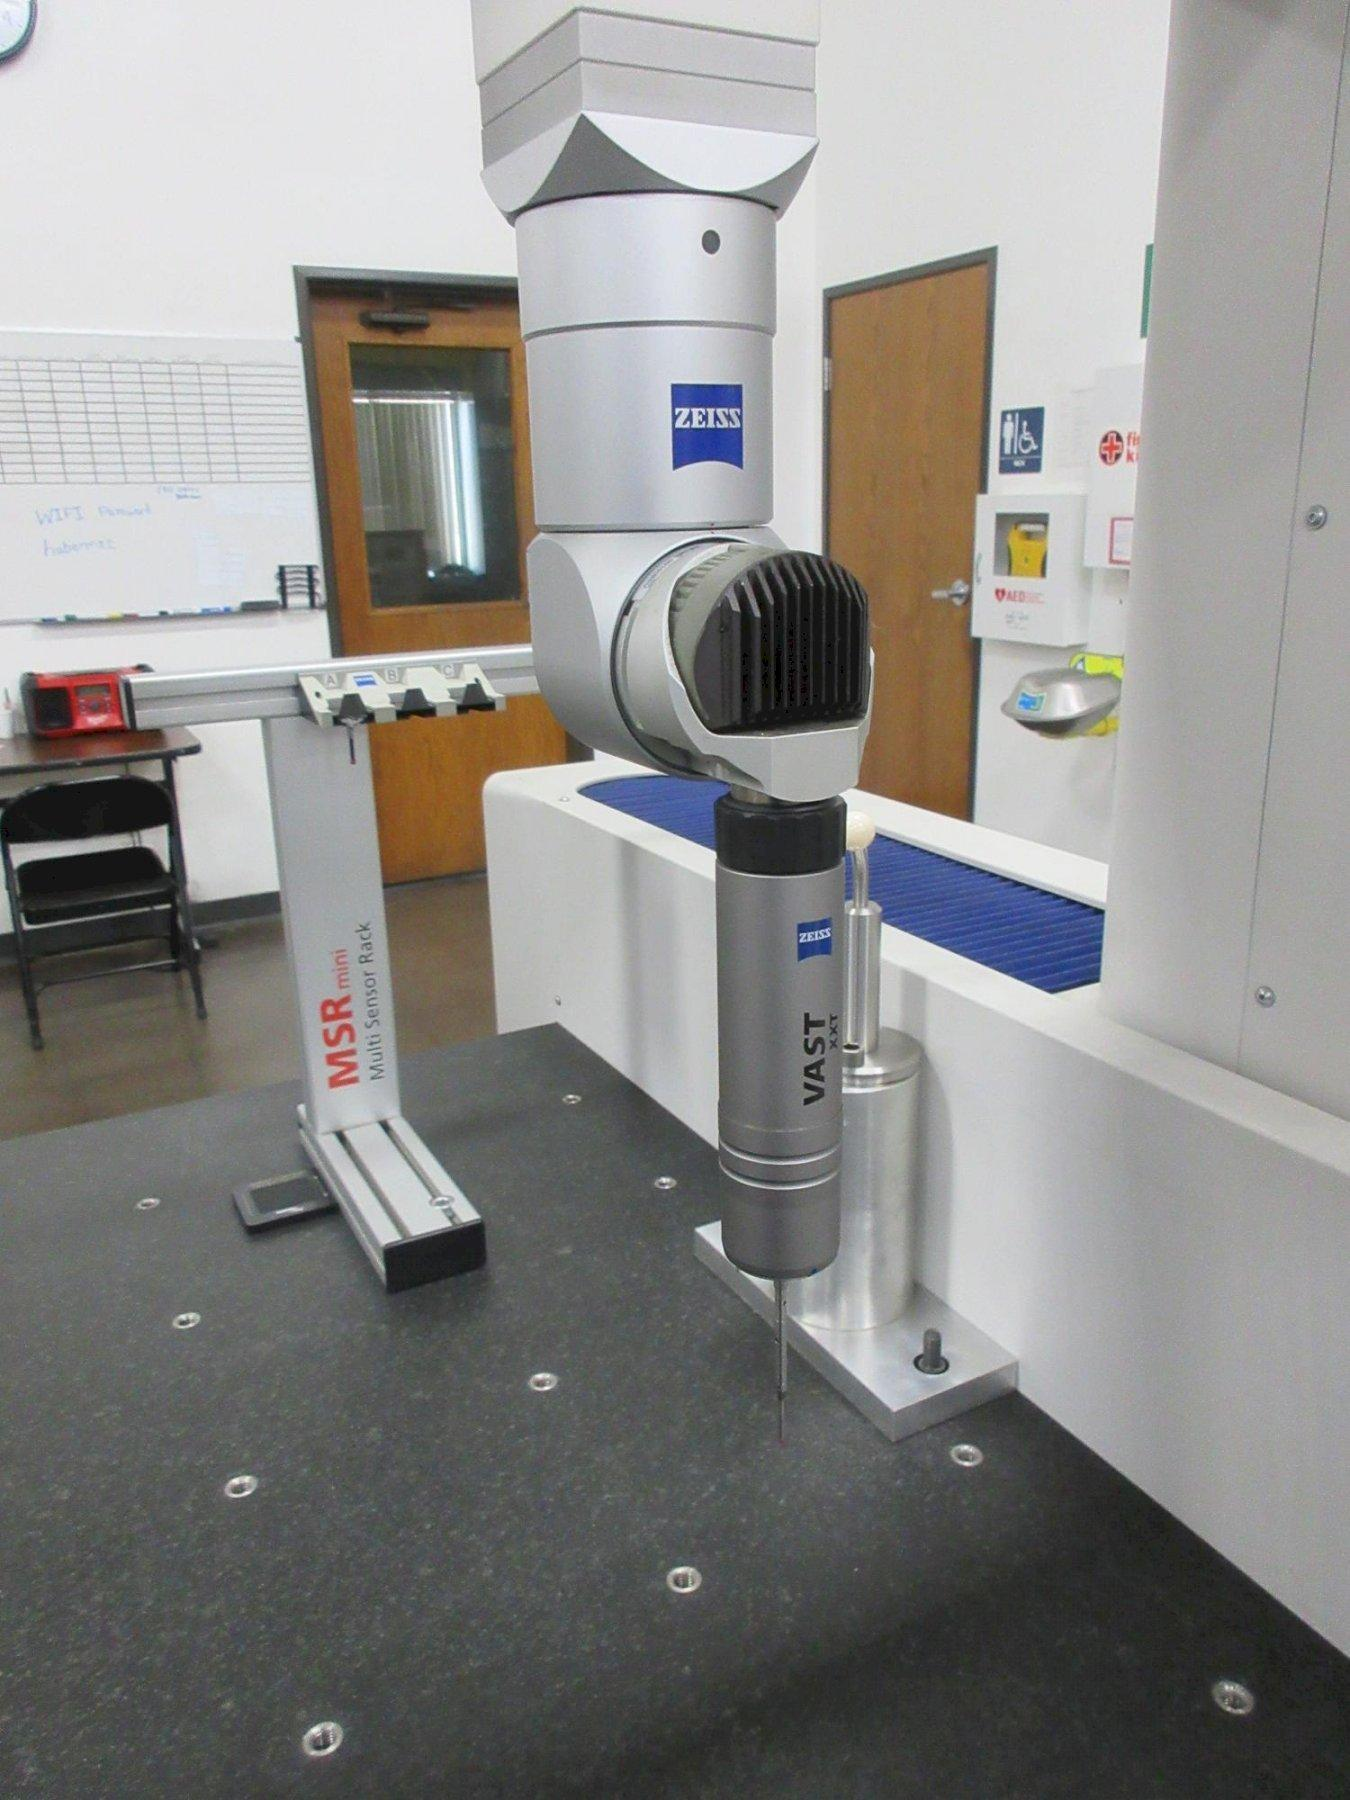 ZEISSZeiss Contura G2 RDS 10/12/6 Coordinate Measuring Machine (CMM)